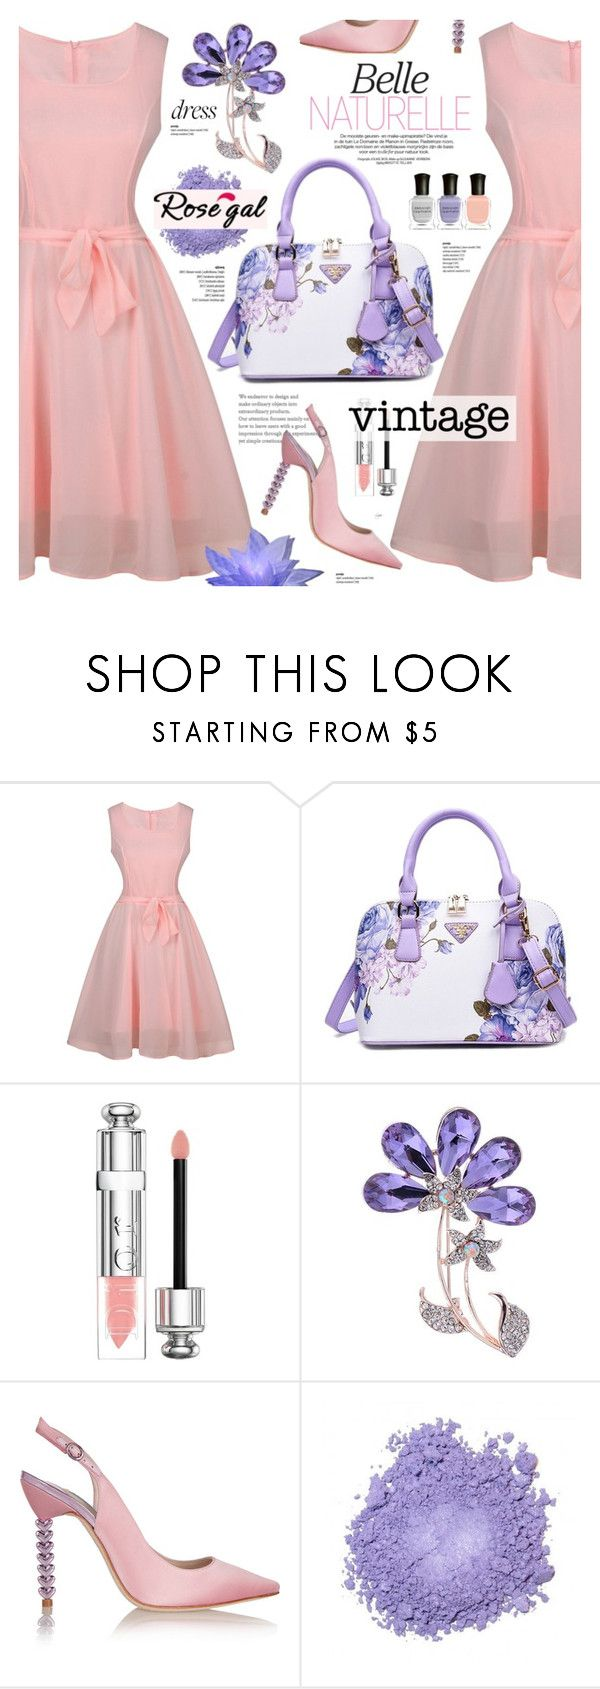 """Rosegal 5 - Vintage dress"" by cly88 ❤ liked on Polyvore featuring Christian Dior, Sophia Webster, Deborah Lippmann and vintage"